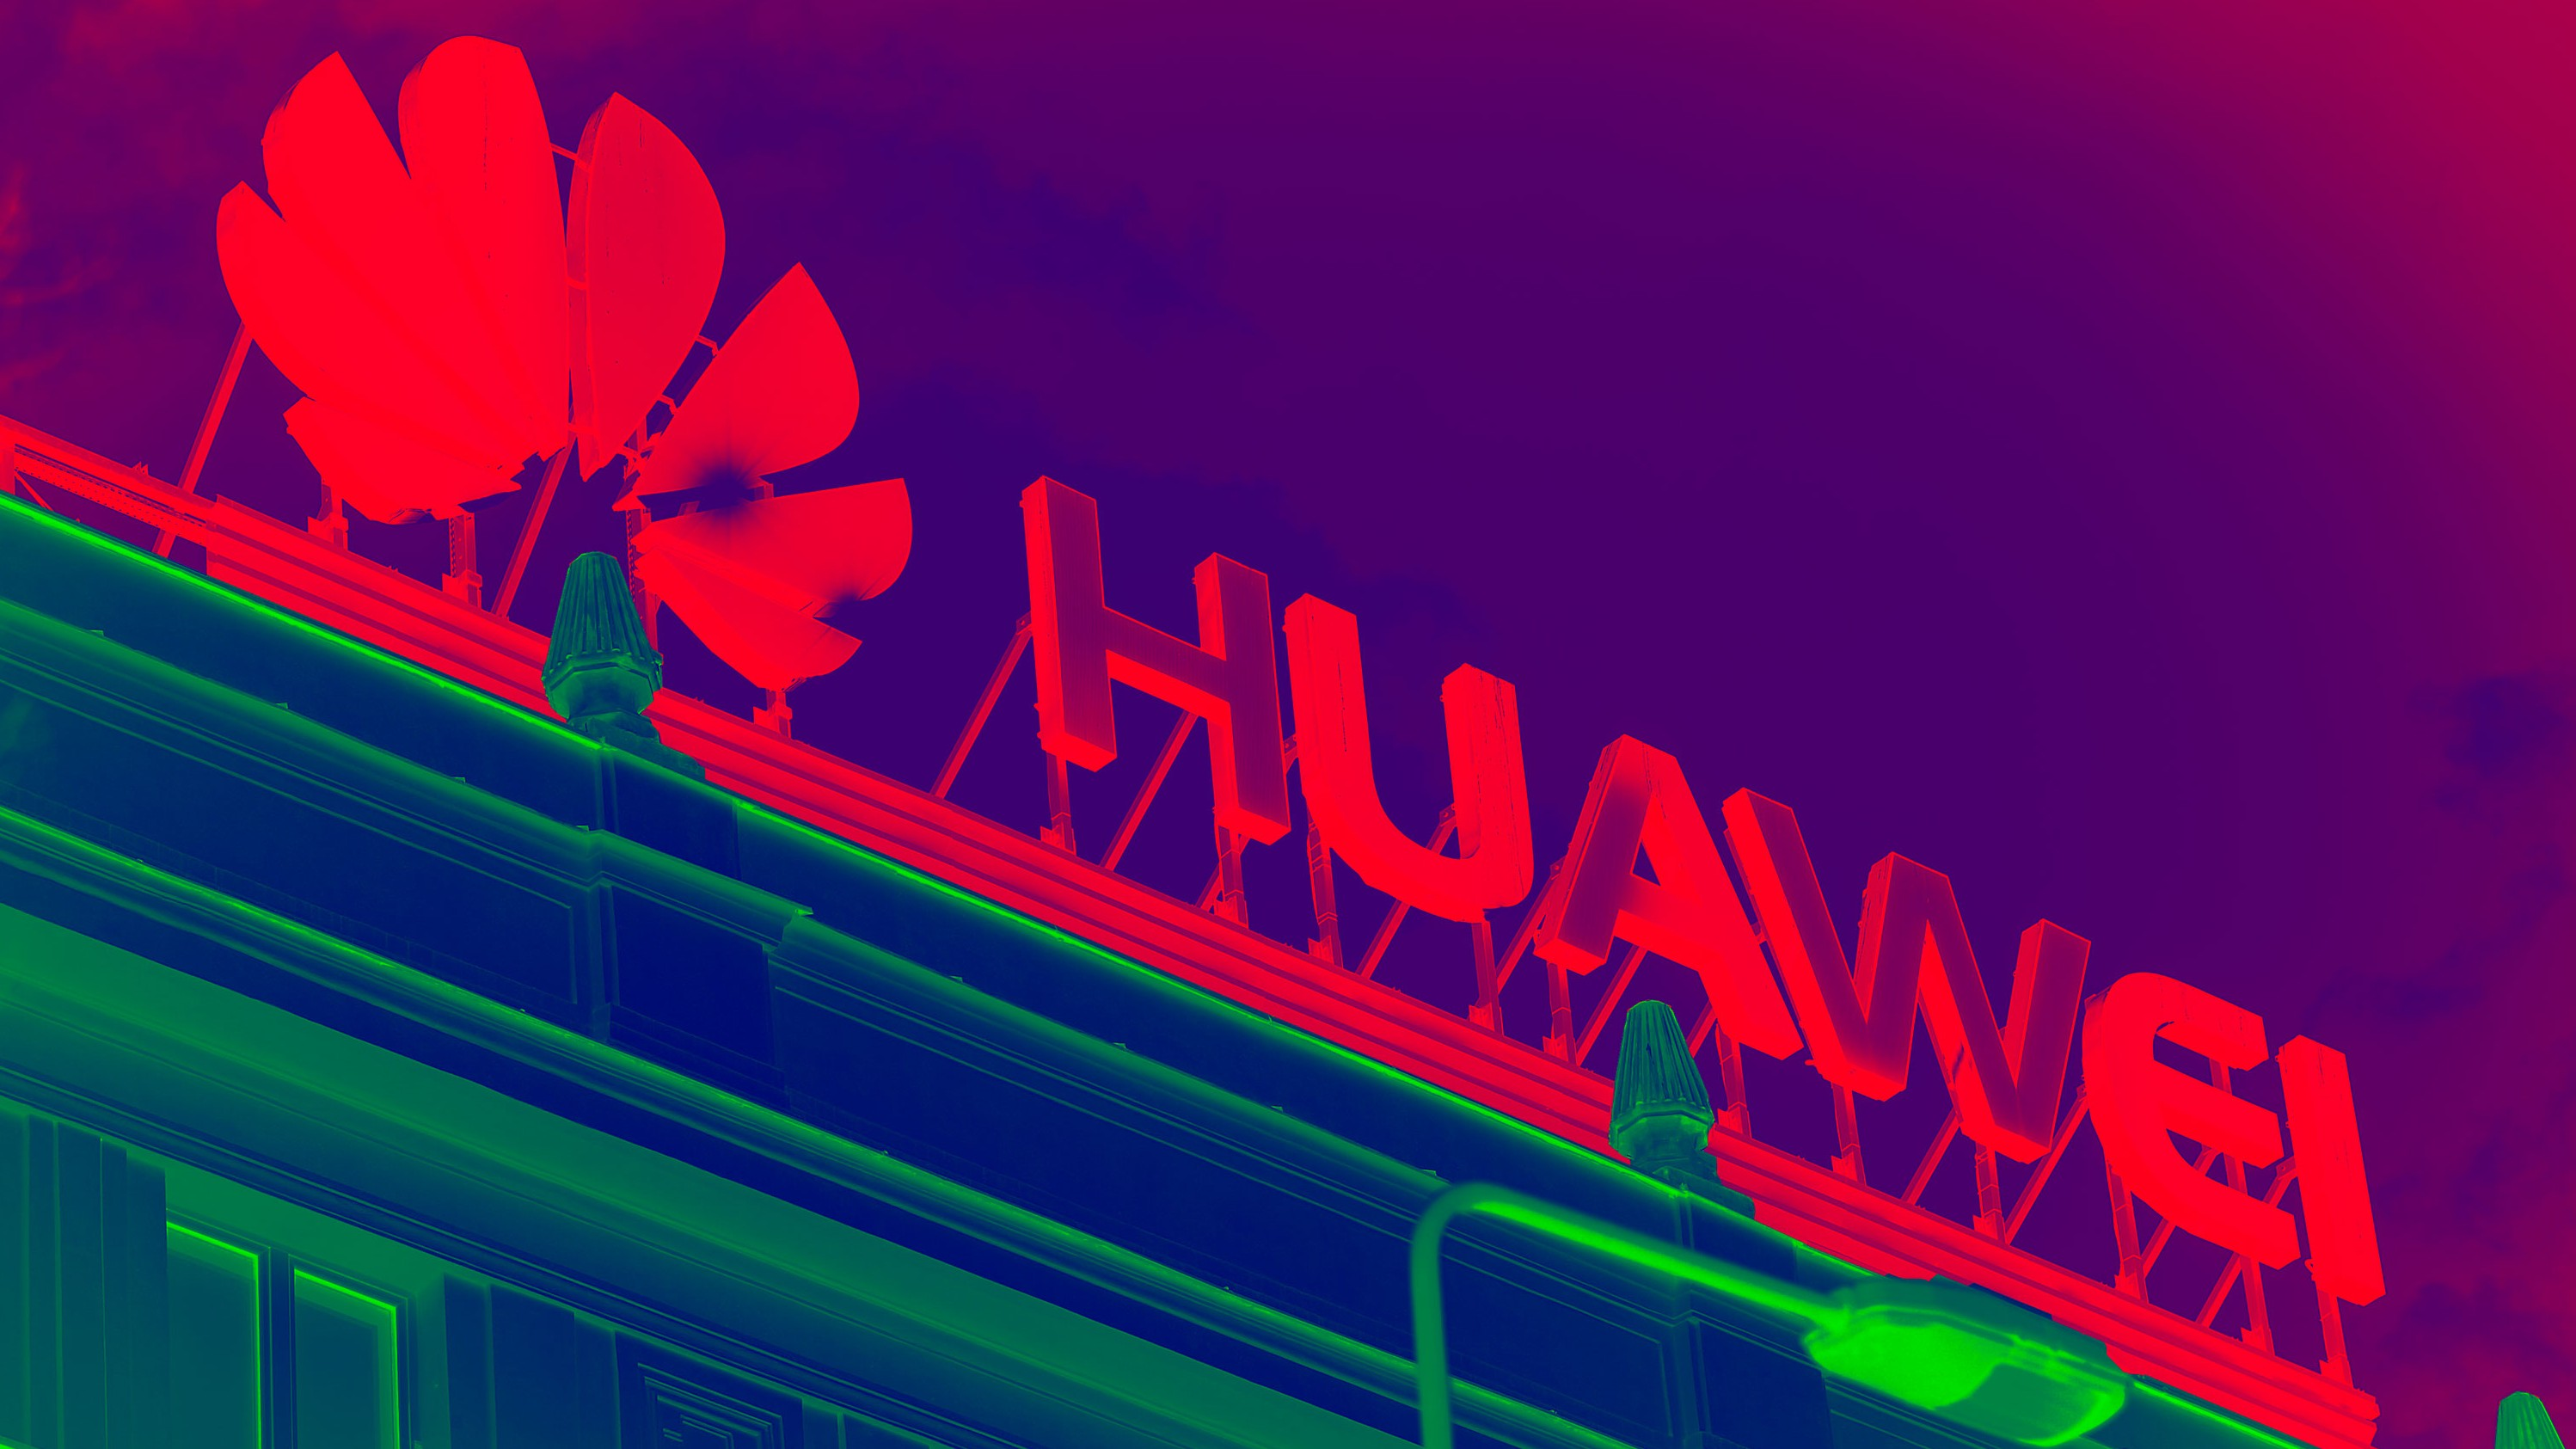 China's Huawei has big ambitions, to weaken our grip on AI leadership